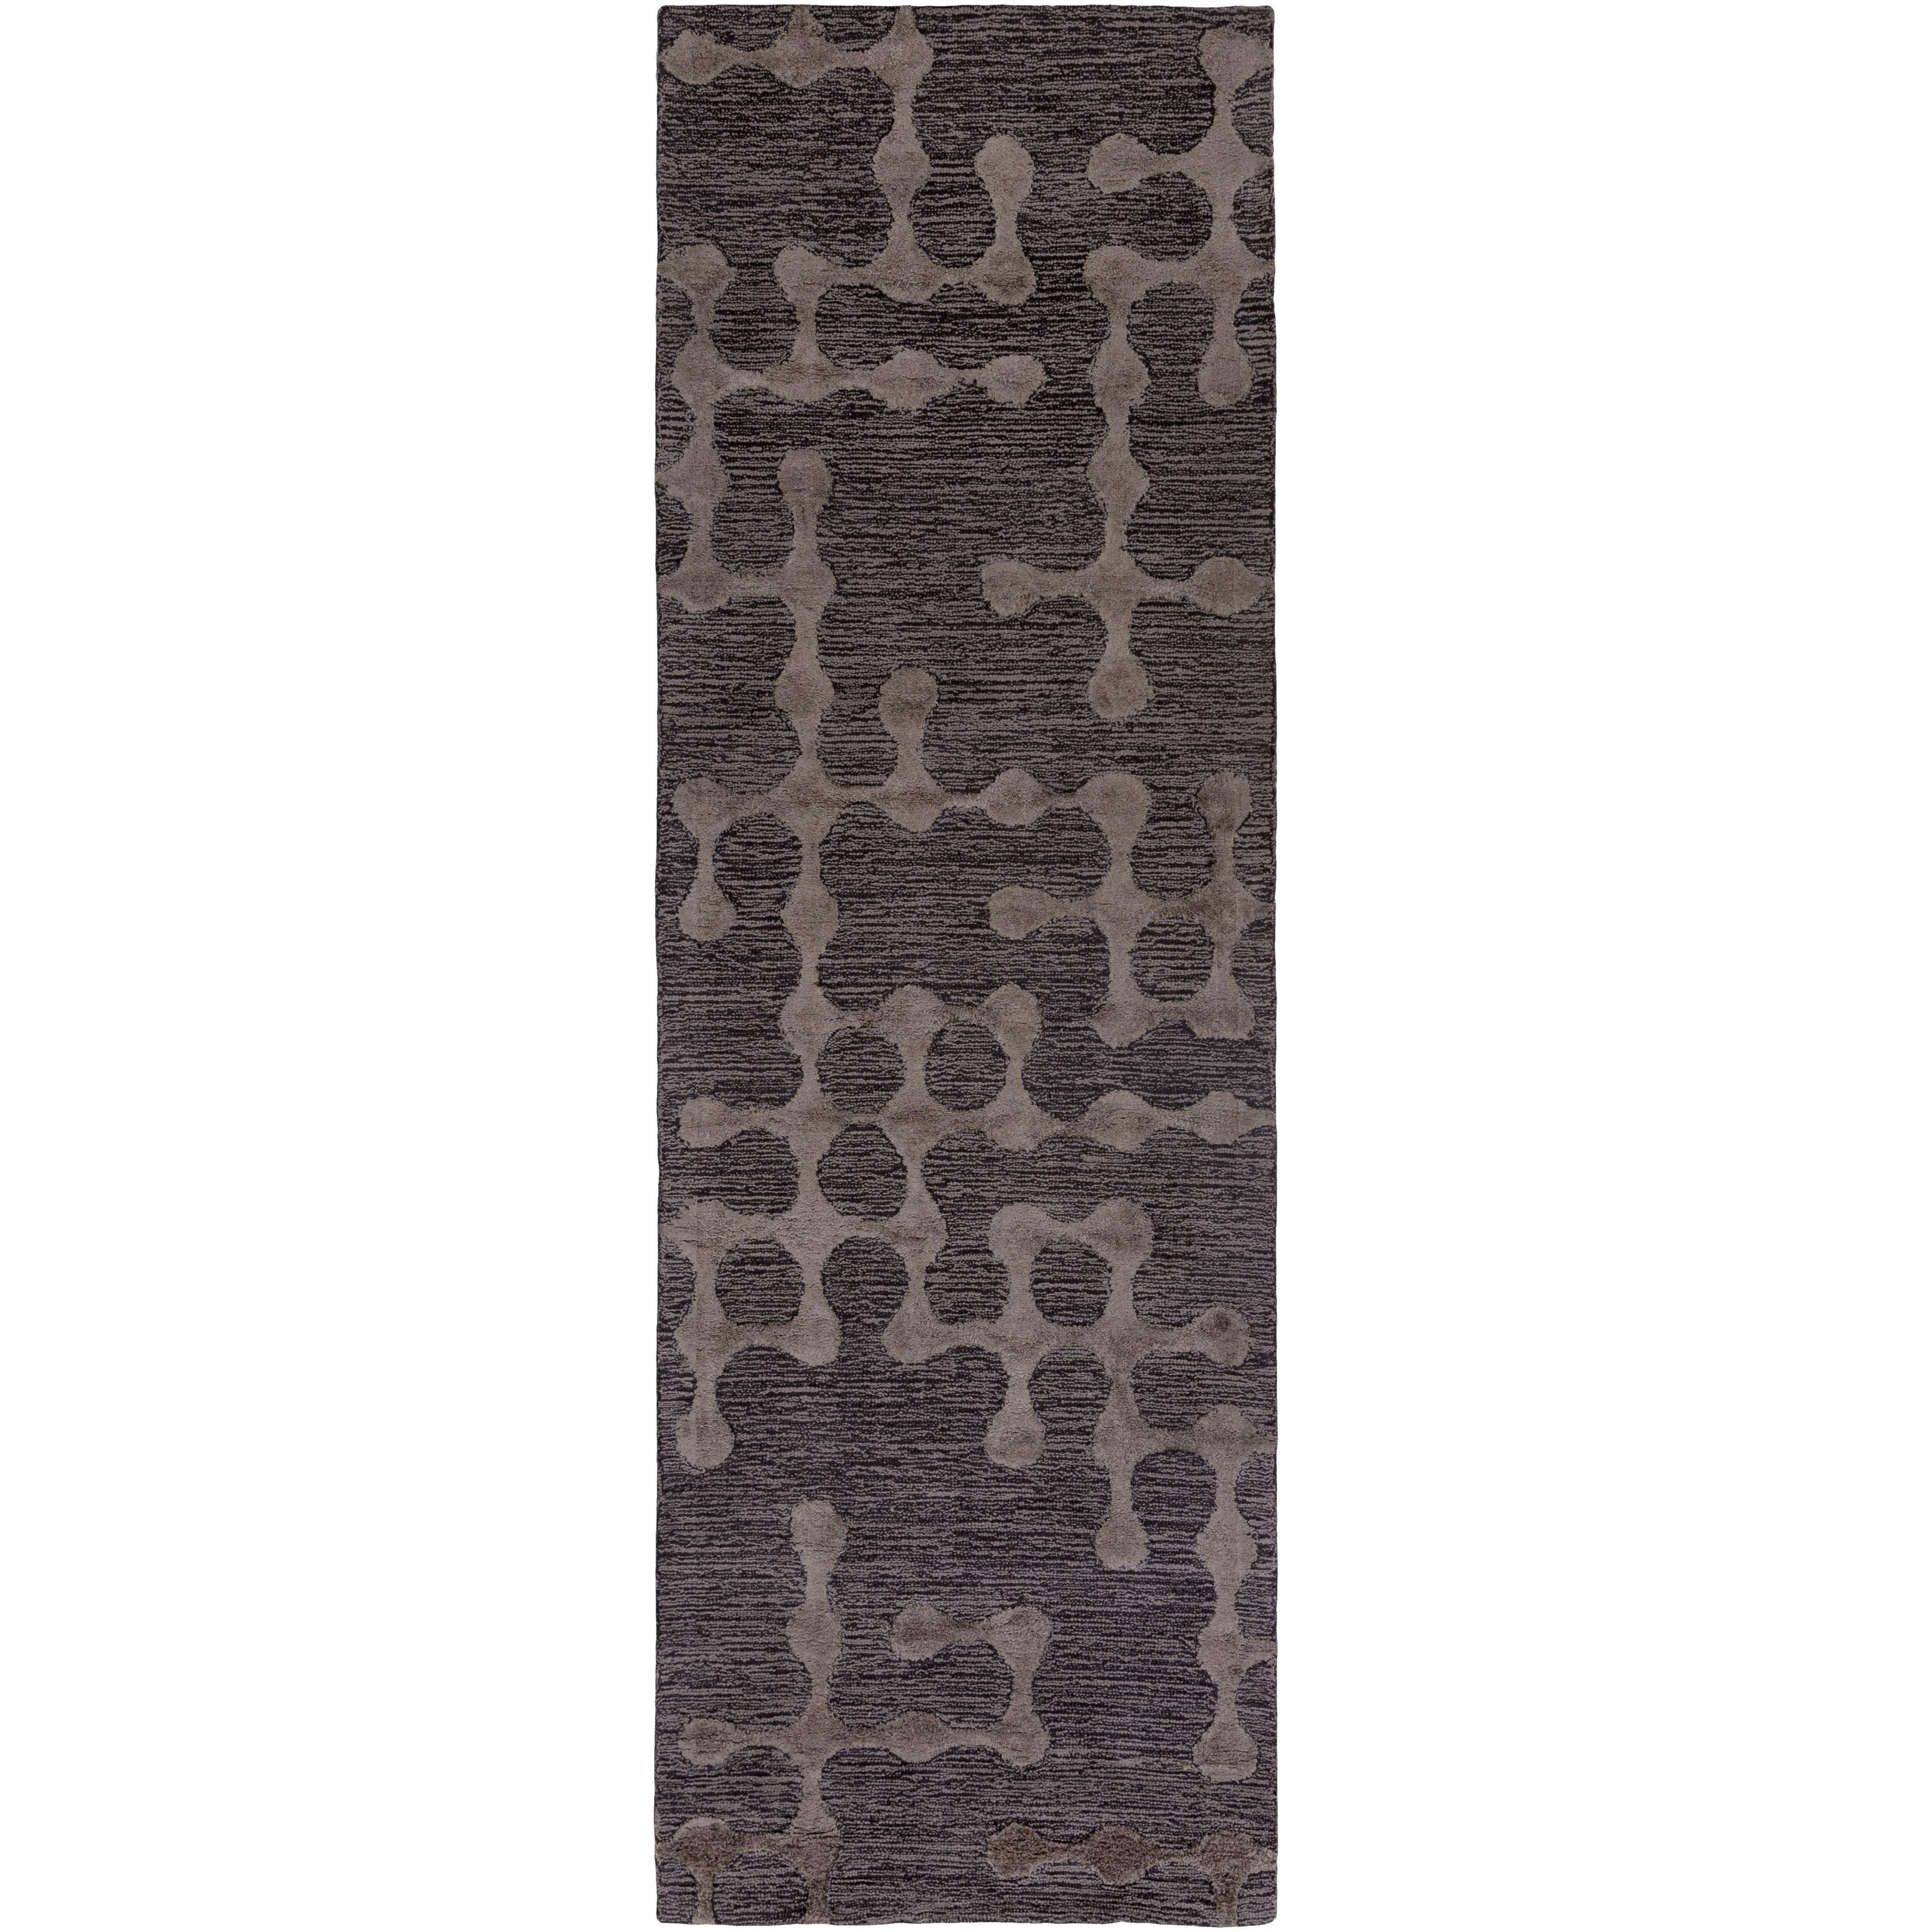 Hand Hooked Graben Cotton/Viscose Rug (2'6 x 8') (Charcoal Grey), Black, Size 2' x 8'